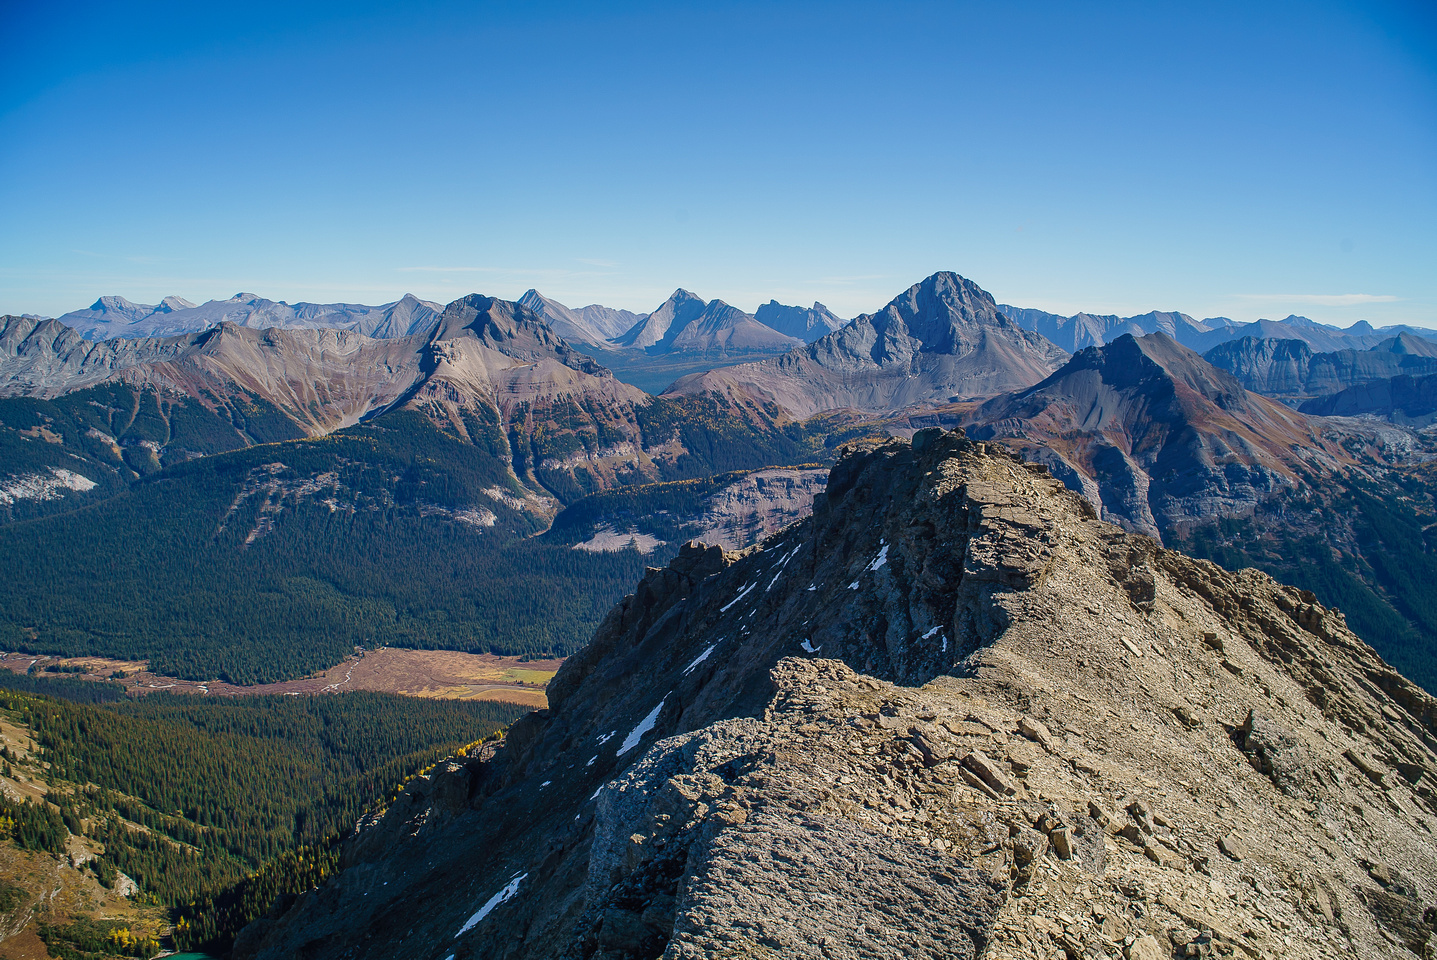 Summit view looking east. Includes Smuts, Birdwood, Snow Peak with Fortress, Gusty, Galatea, Tower, Engadine behind.